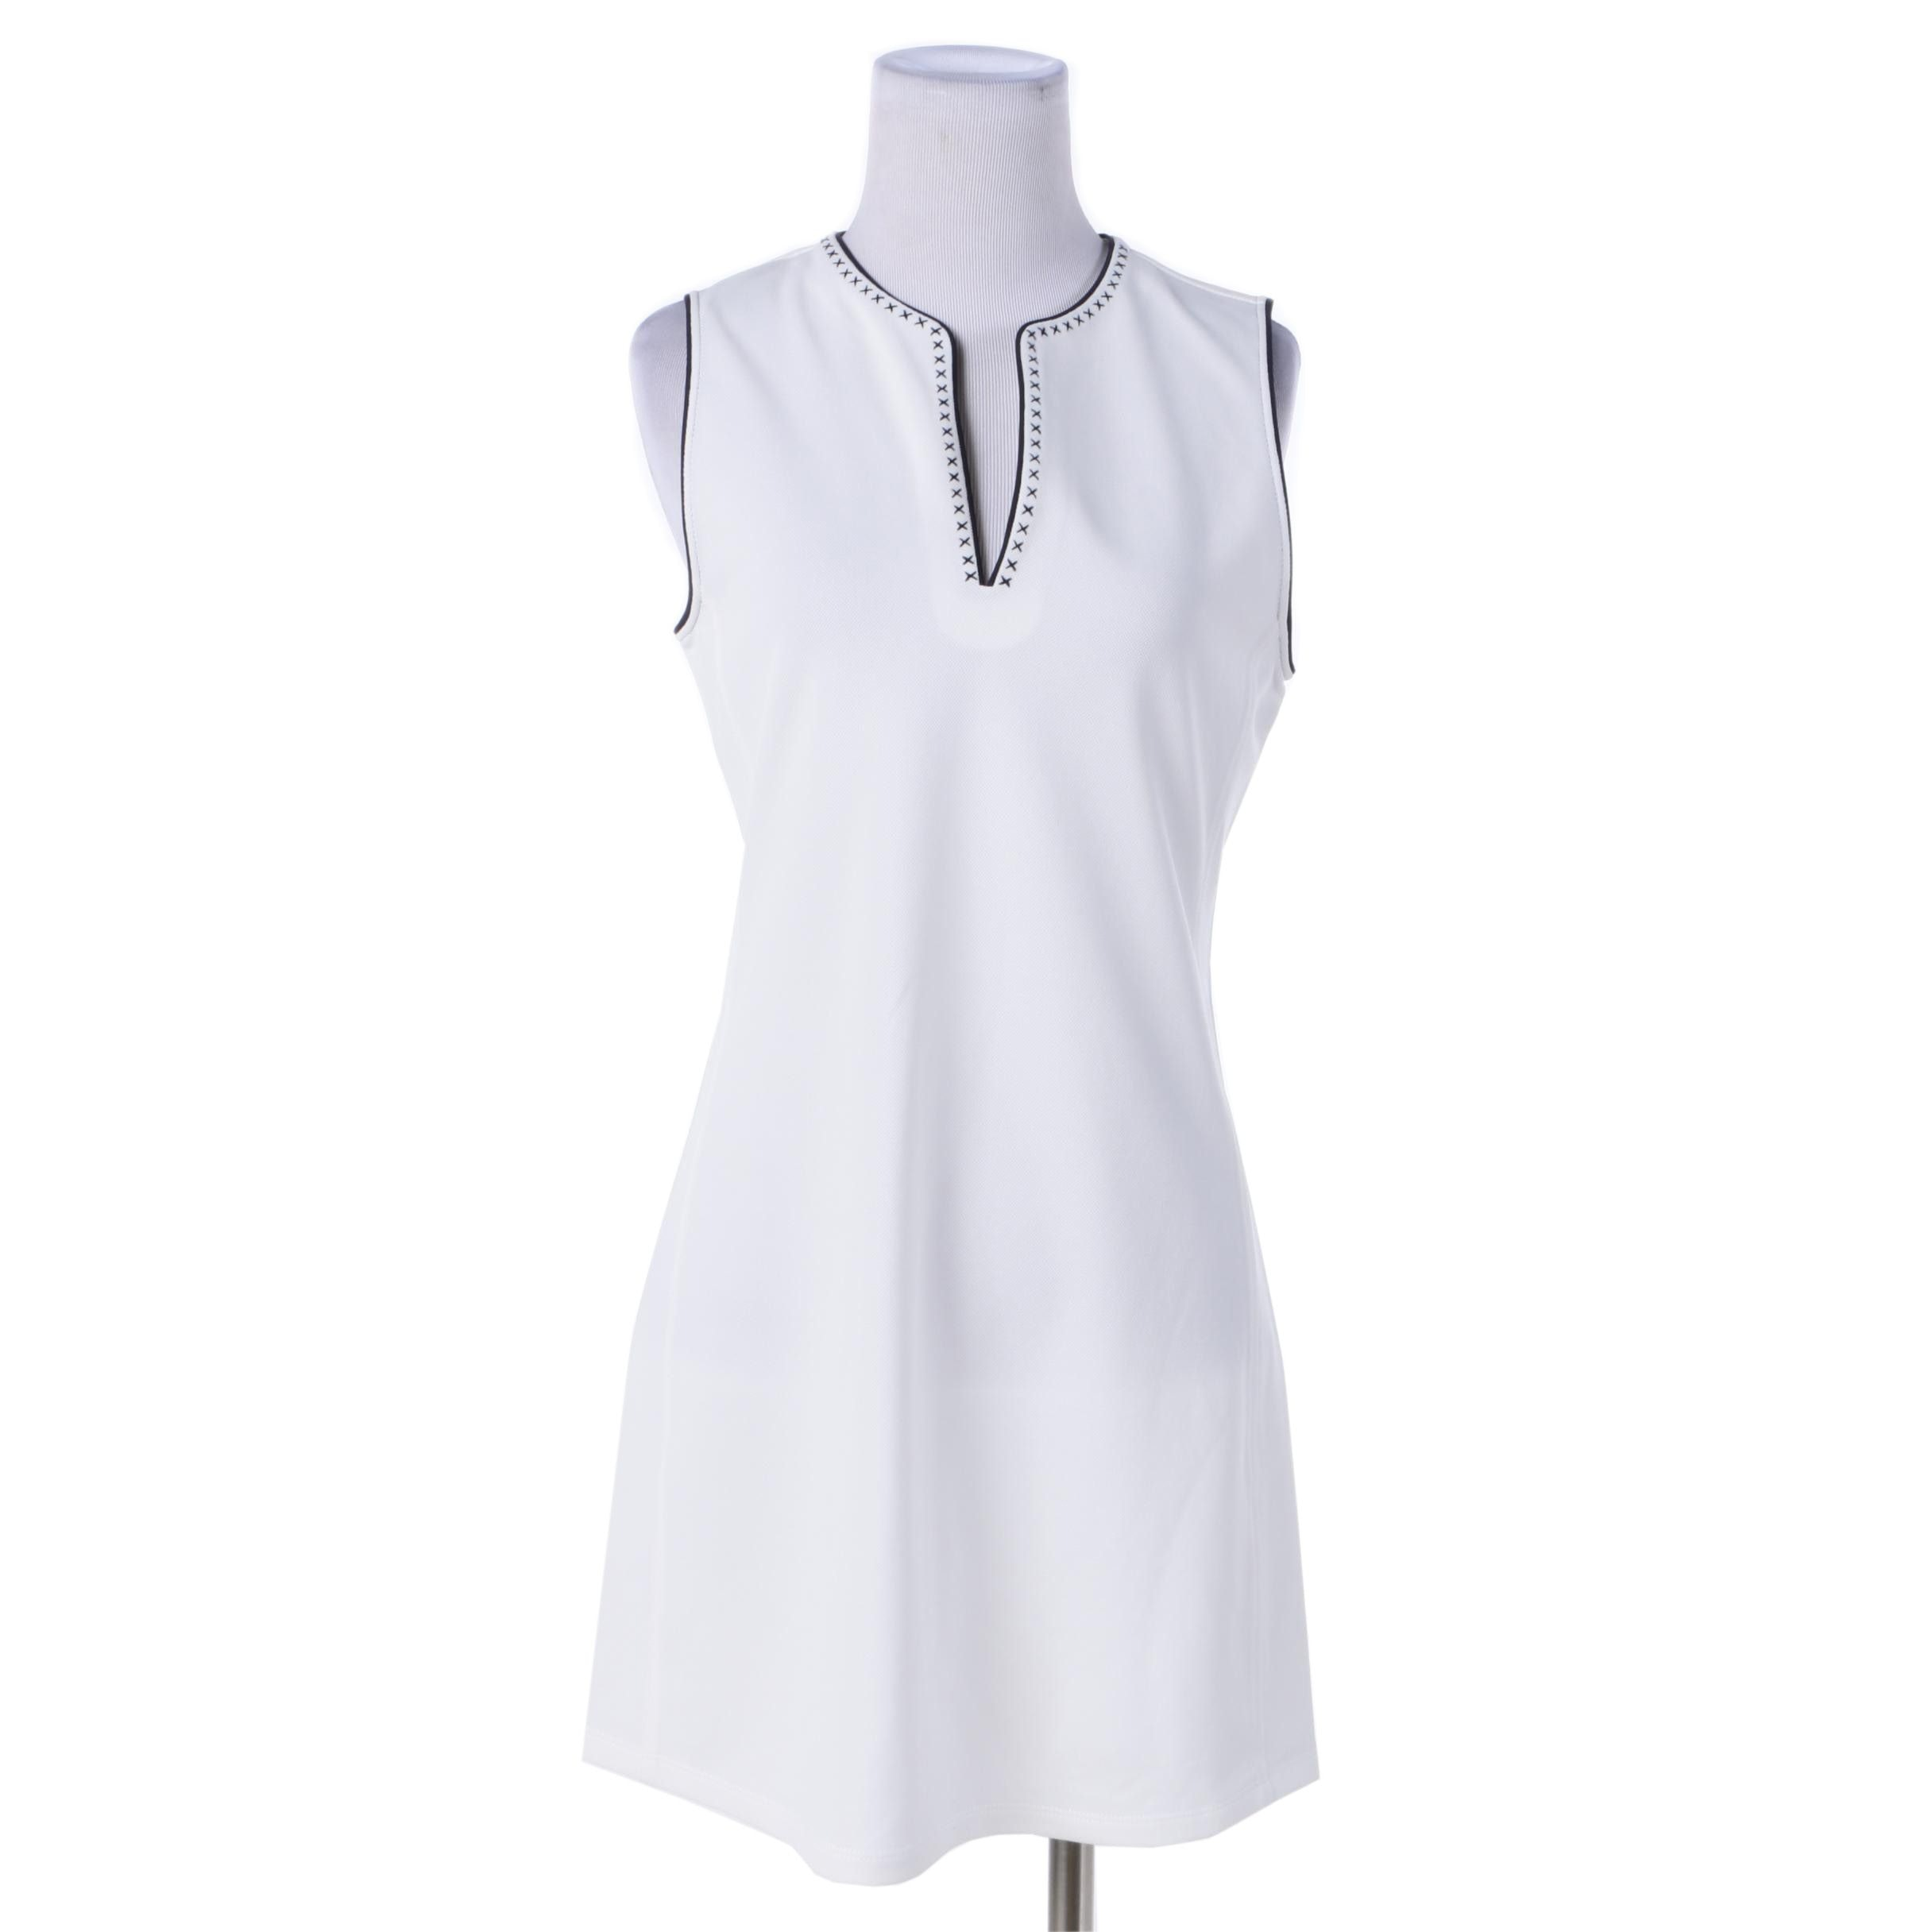 Tory Sport White Cross-Stitch Sleeveless Dress